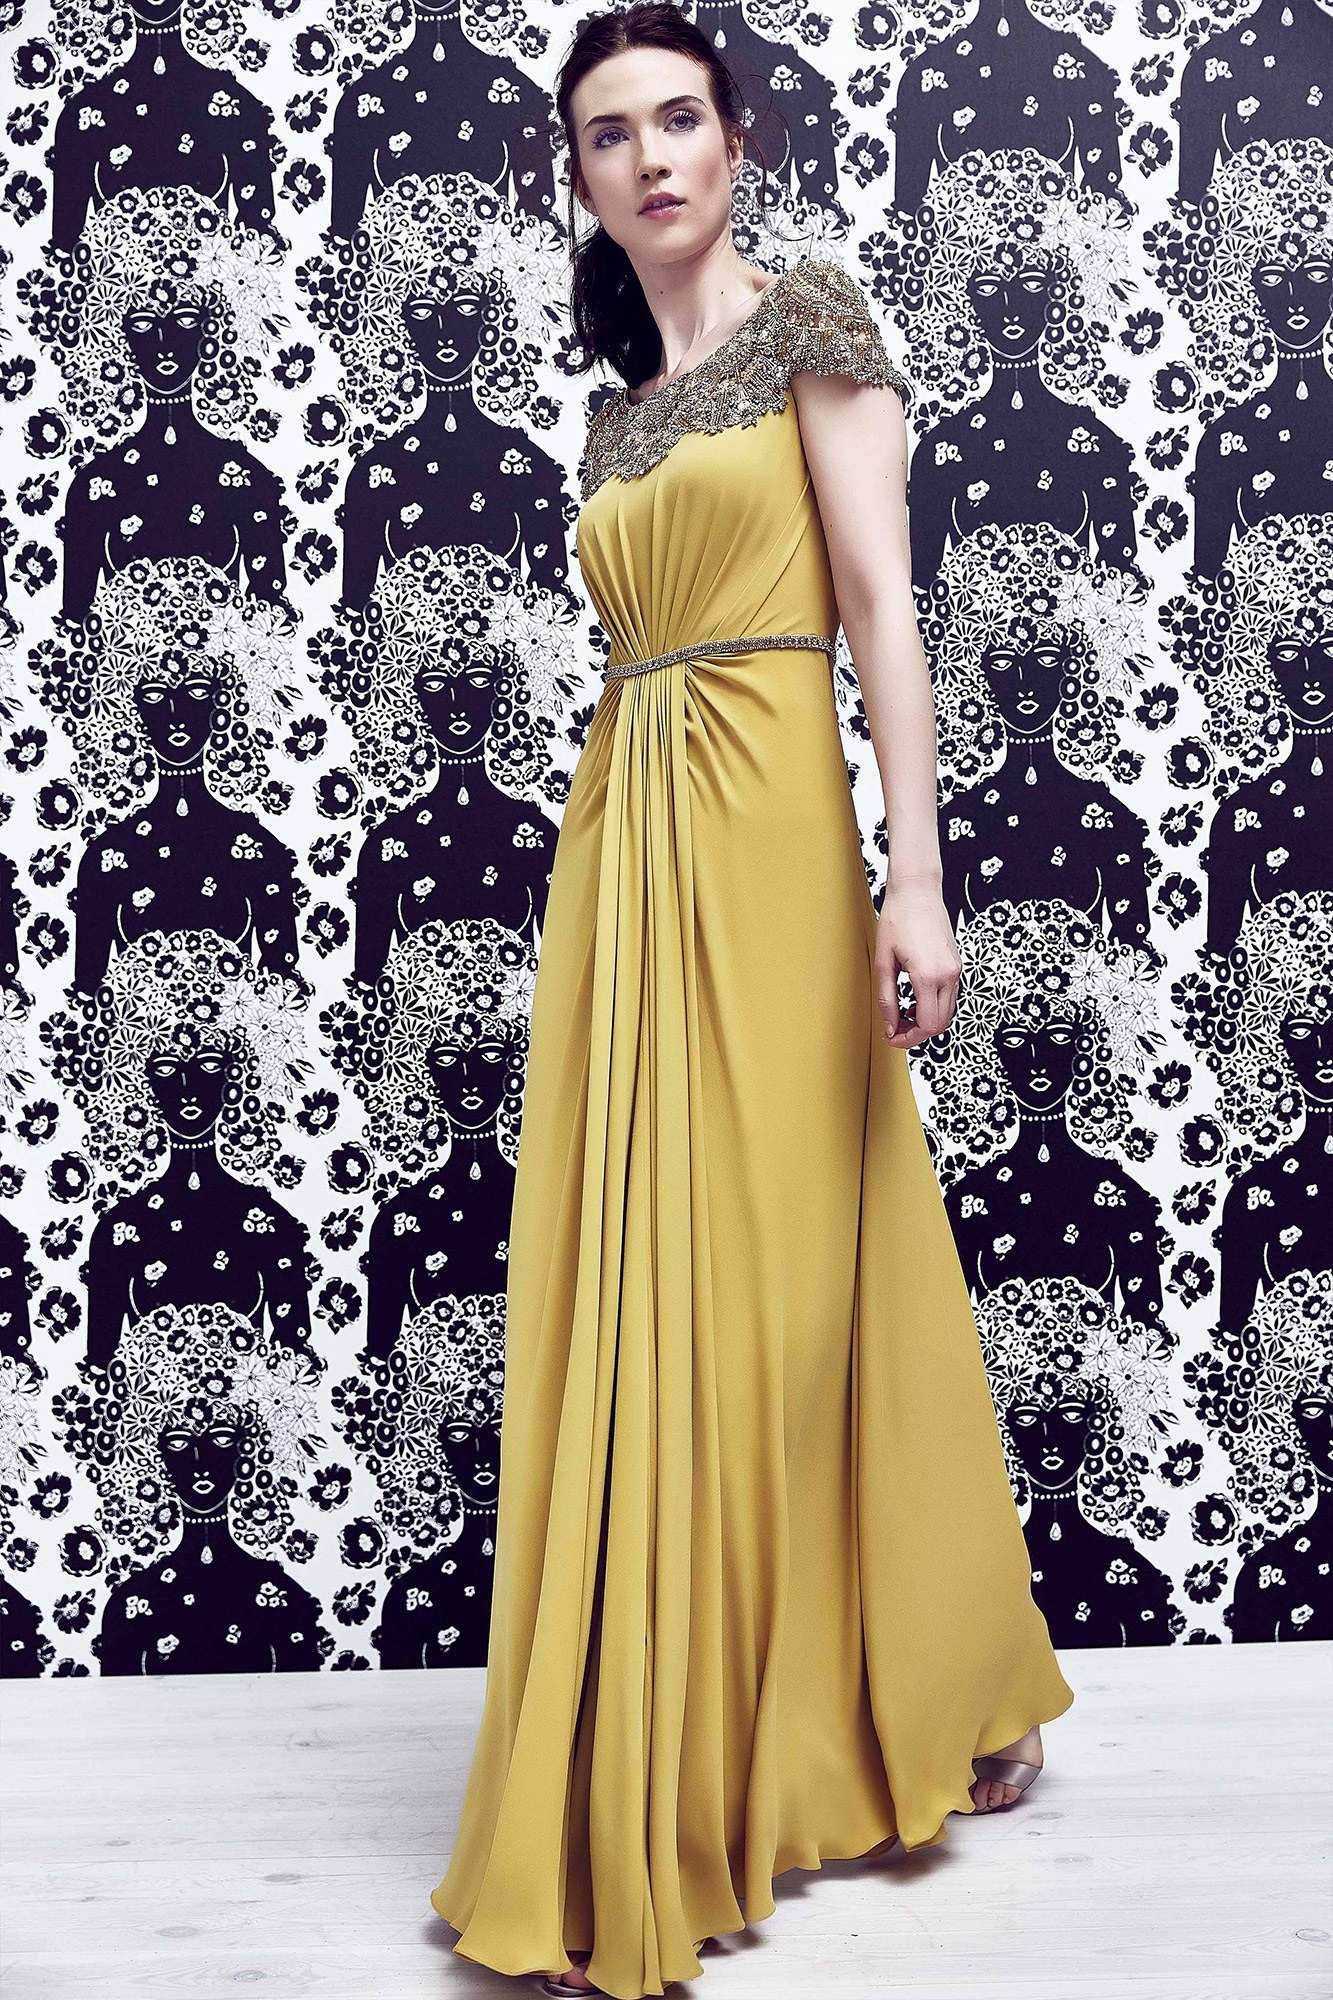 what-to-wear-for-a-spring-wedding-guest-outfit-yellow-dress-maxi-hairr-pony-dinner.jpg